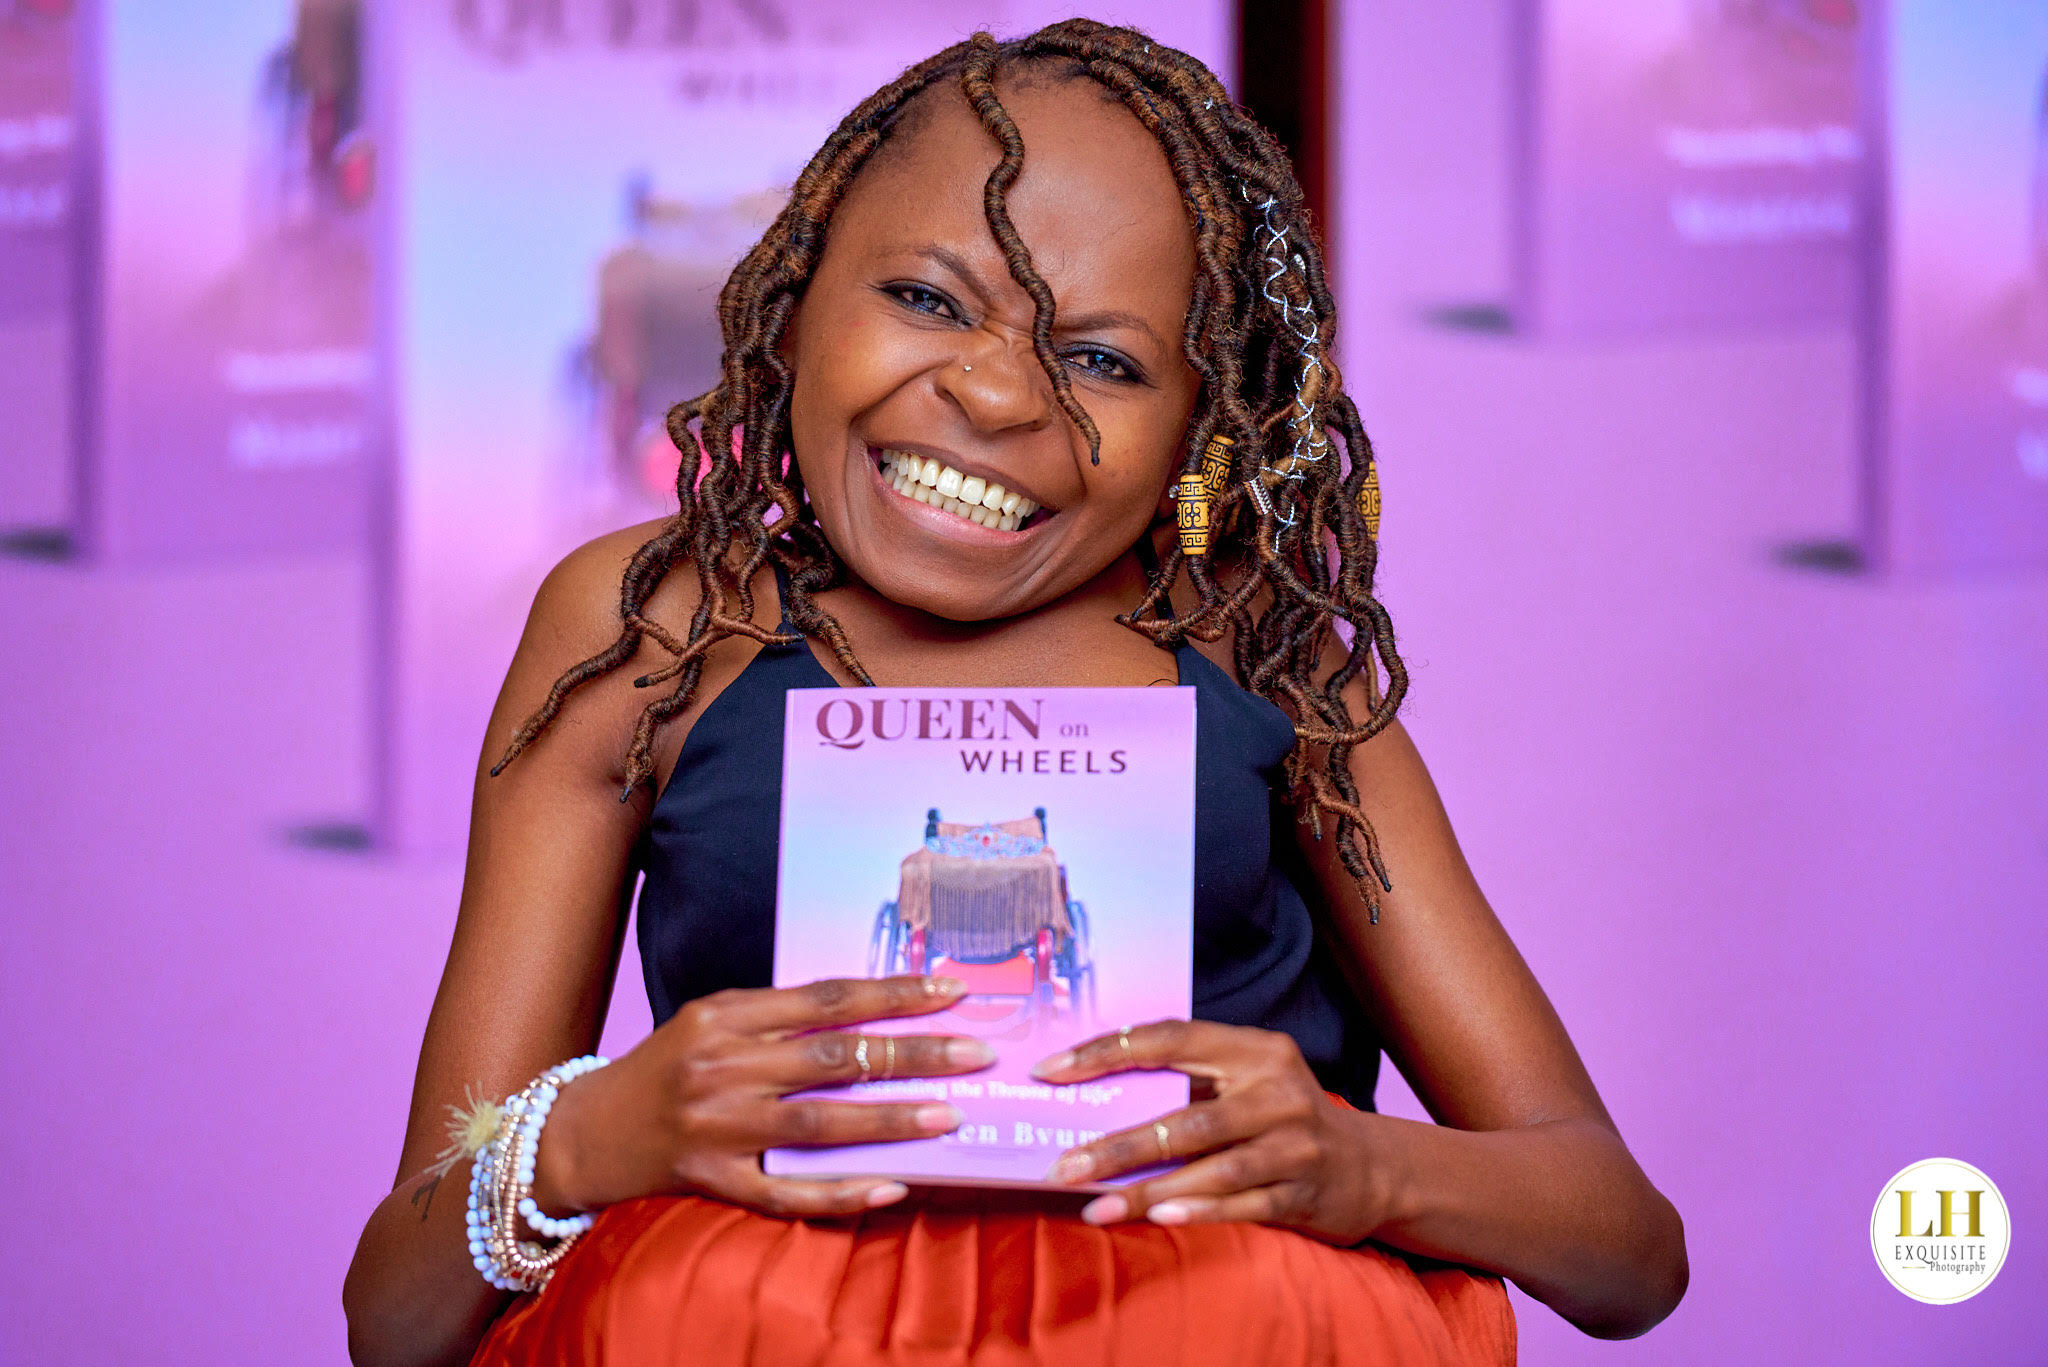 Photo: Maureen Bvuma wearing orange skirt and sleeveless navy top. Her hair is braided. She is sitting, smiling and holding her book 'Queen on Wheels'